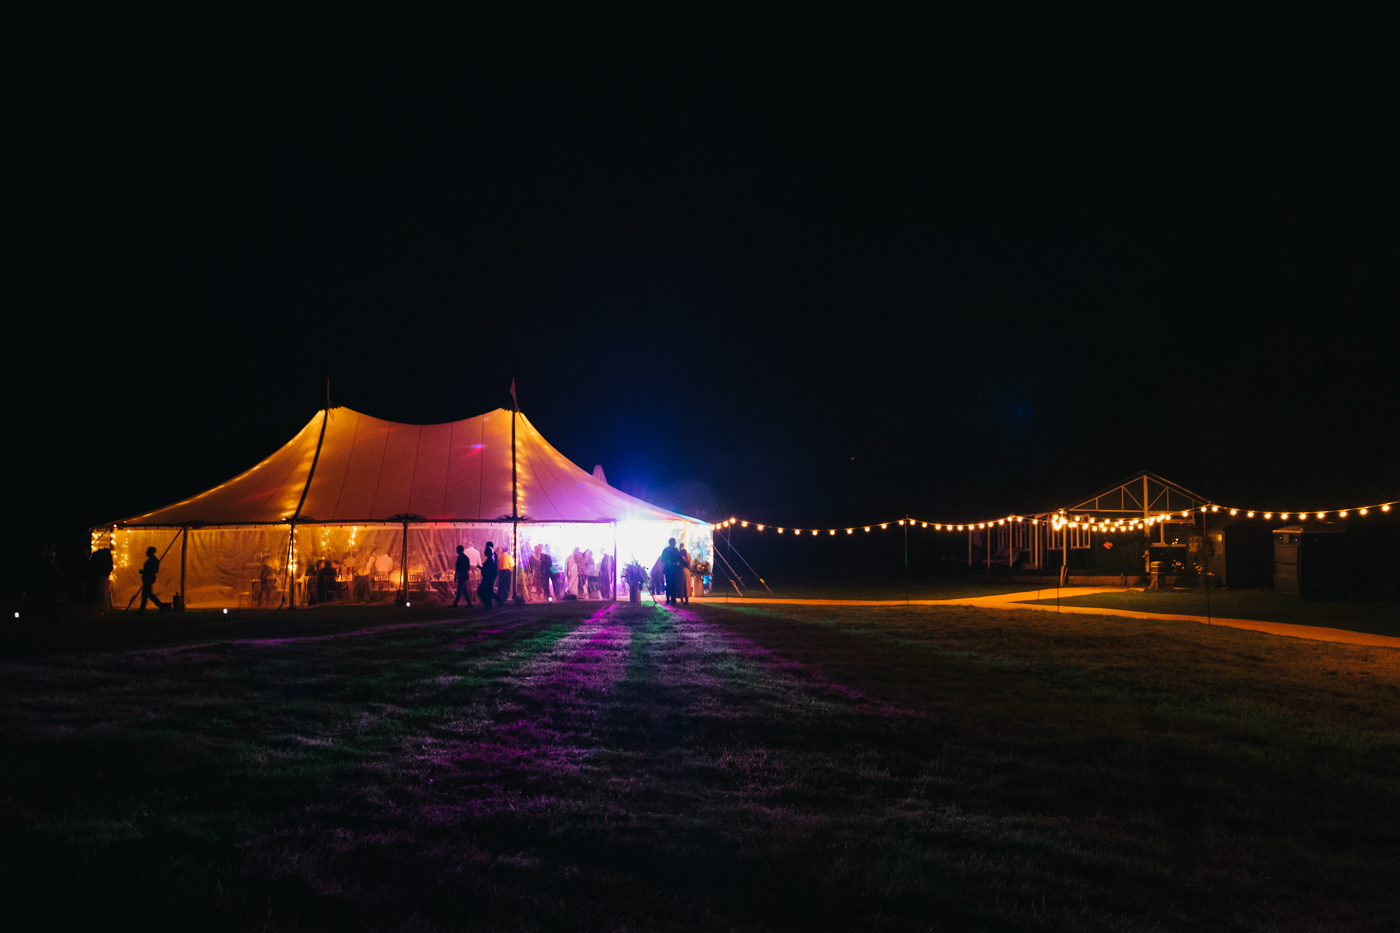 north-yorkshire-marquee-wedding-photographer-teesside-north-east-wedding-photography-0098.jpg